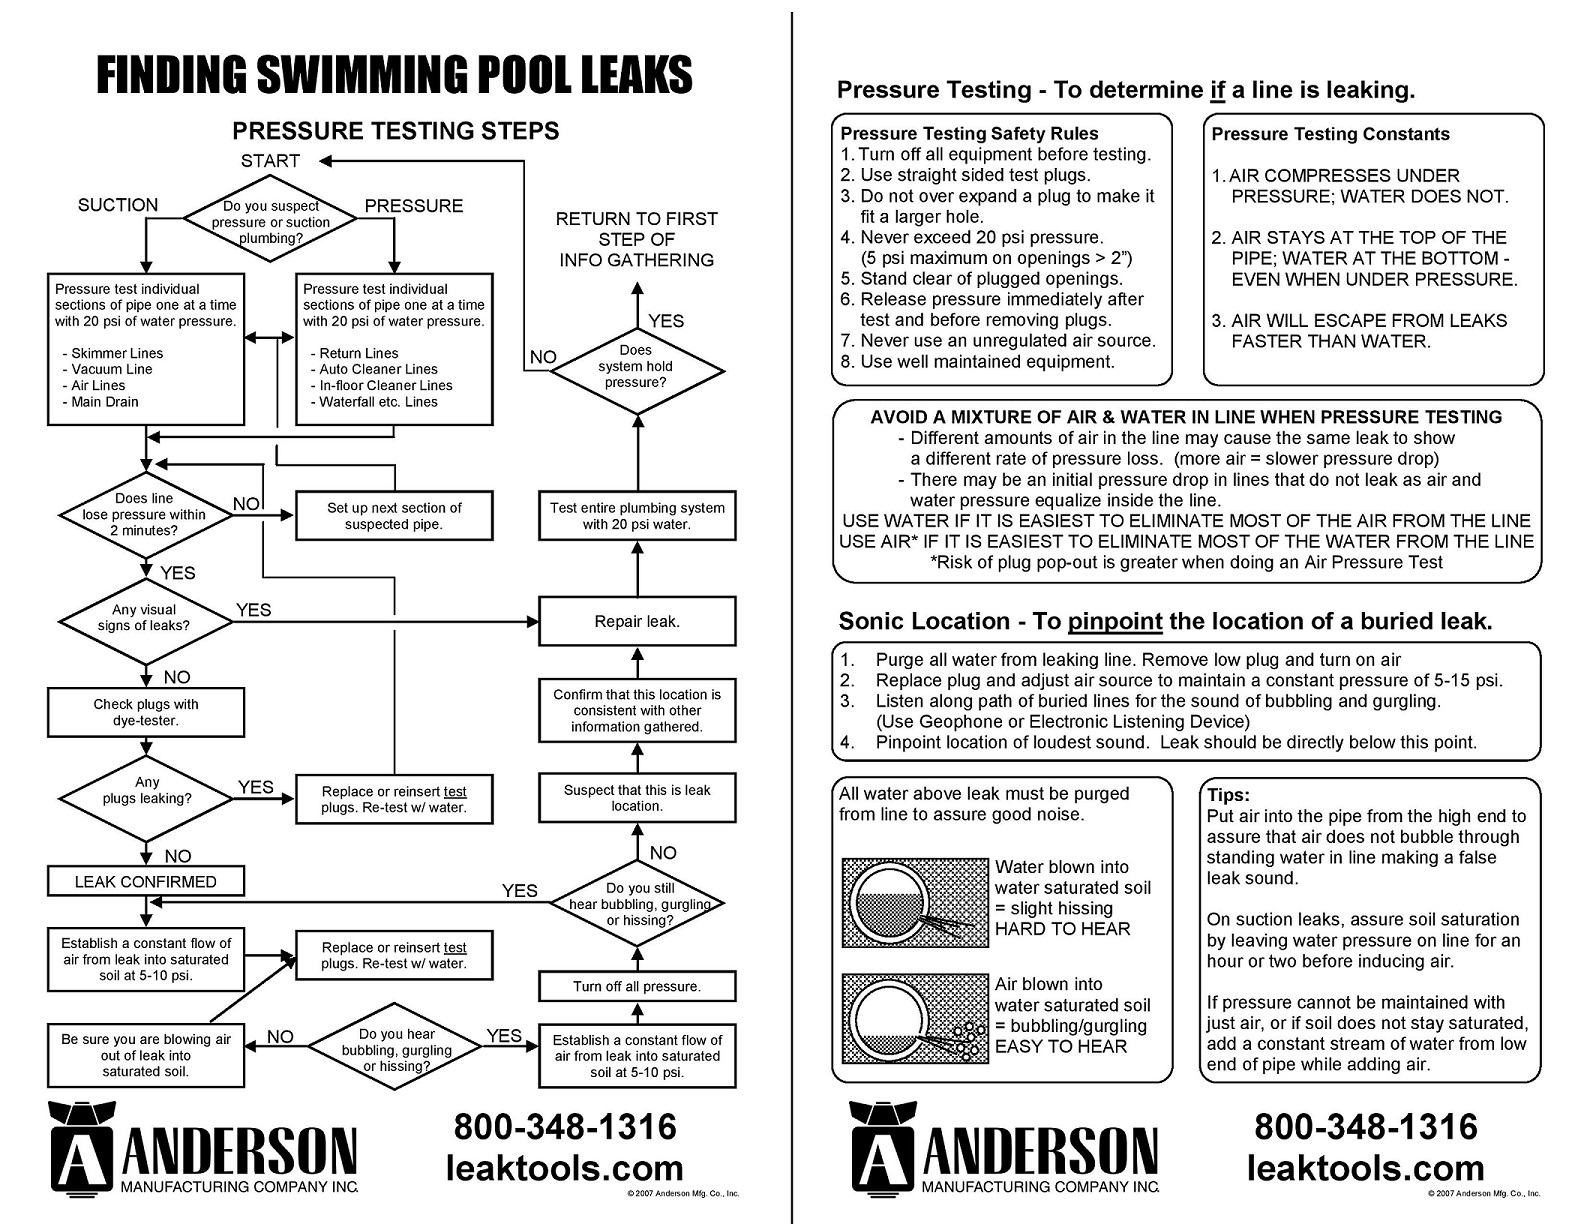 Anderson manufacturing company inc flow charts for Swimming pool pressure test plugs